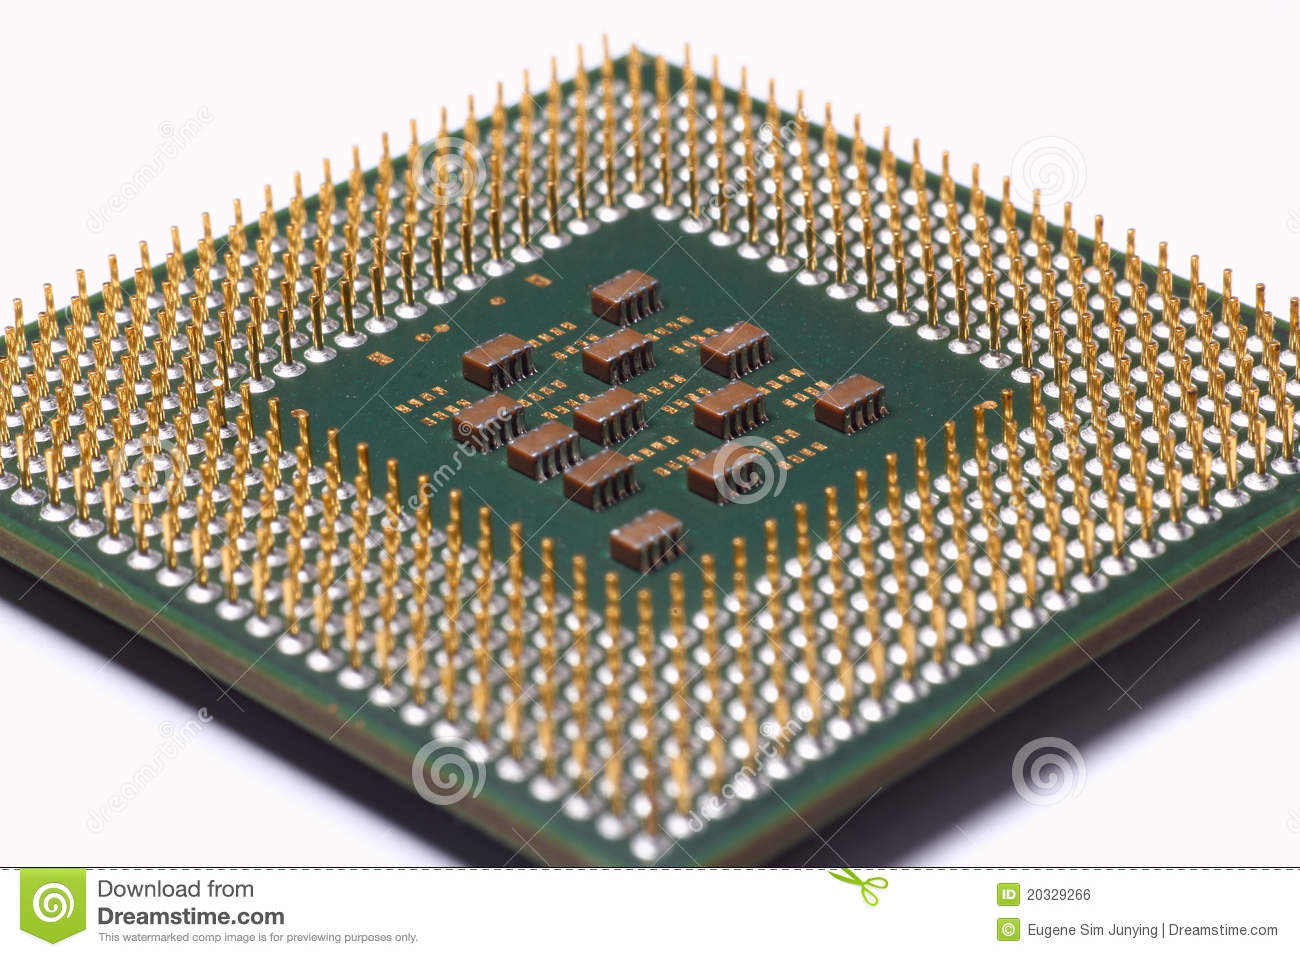 central processor images - usseek.com